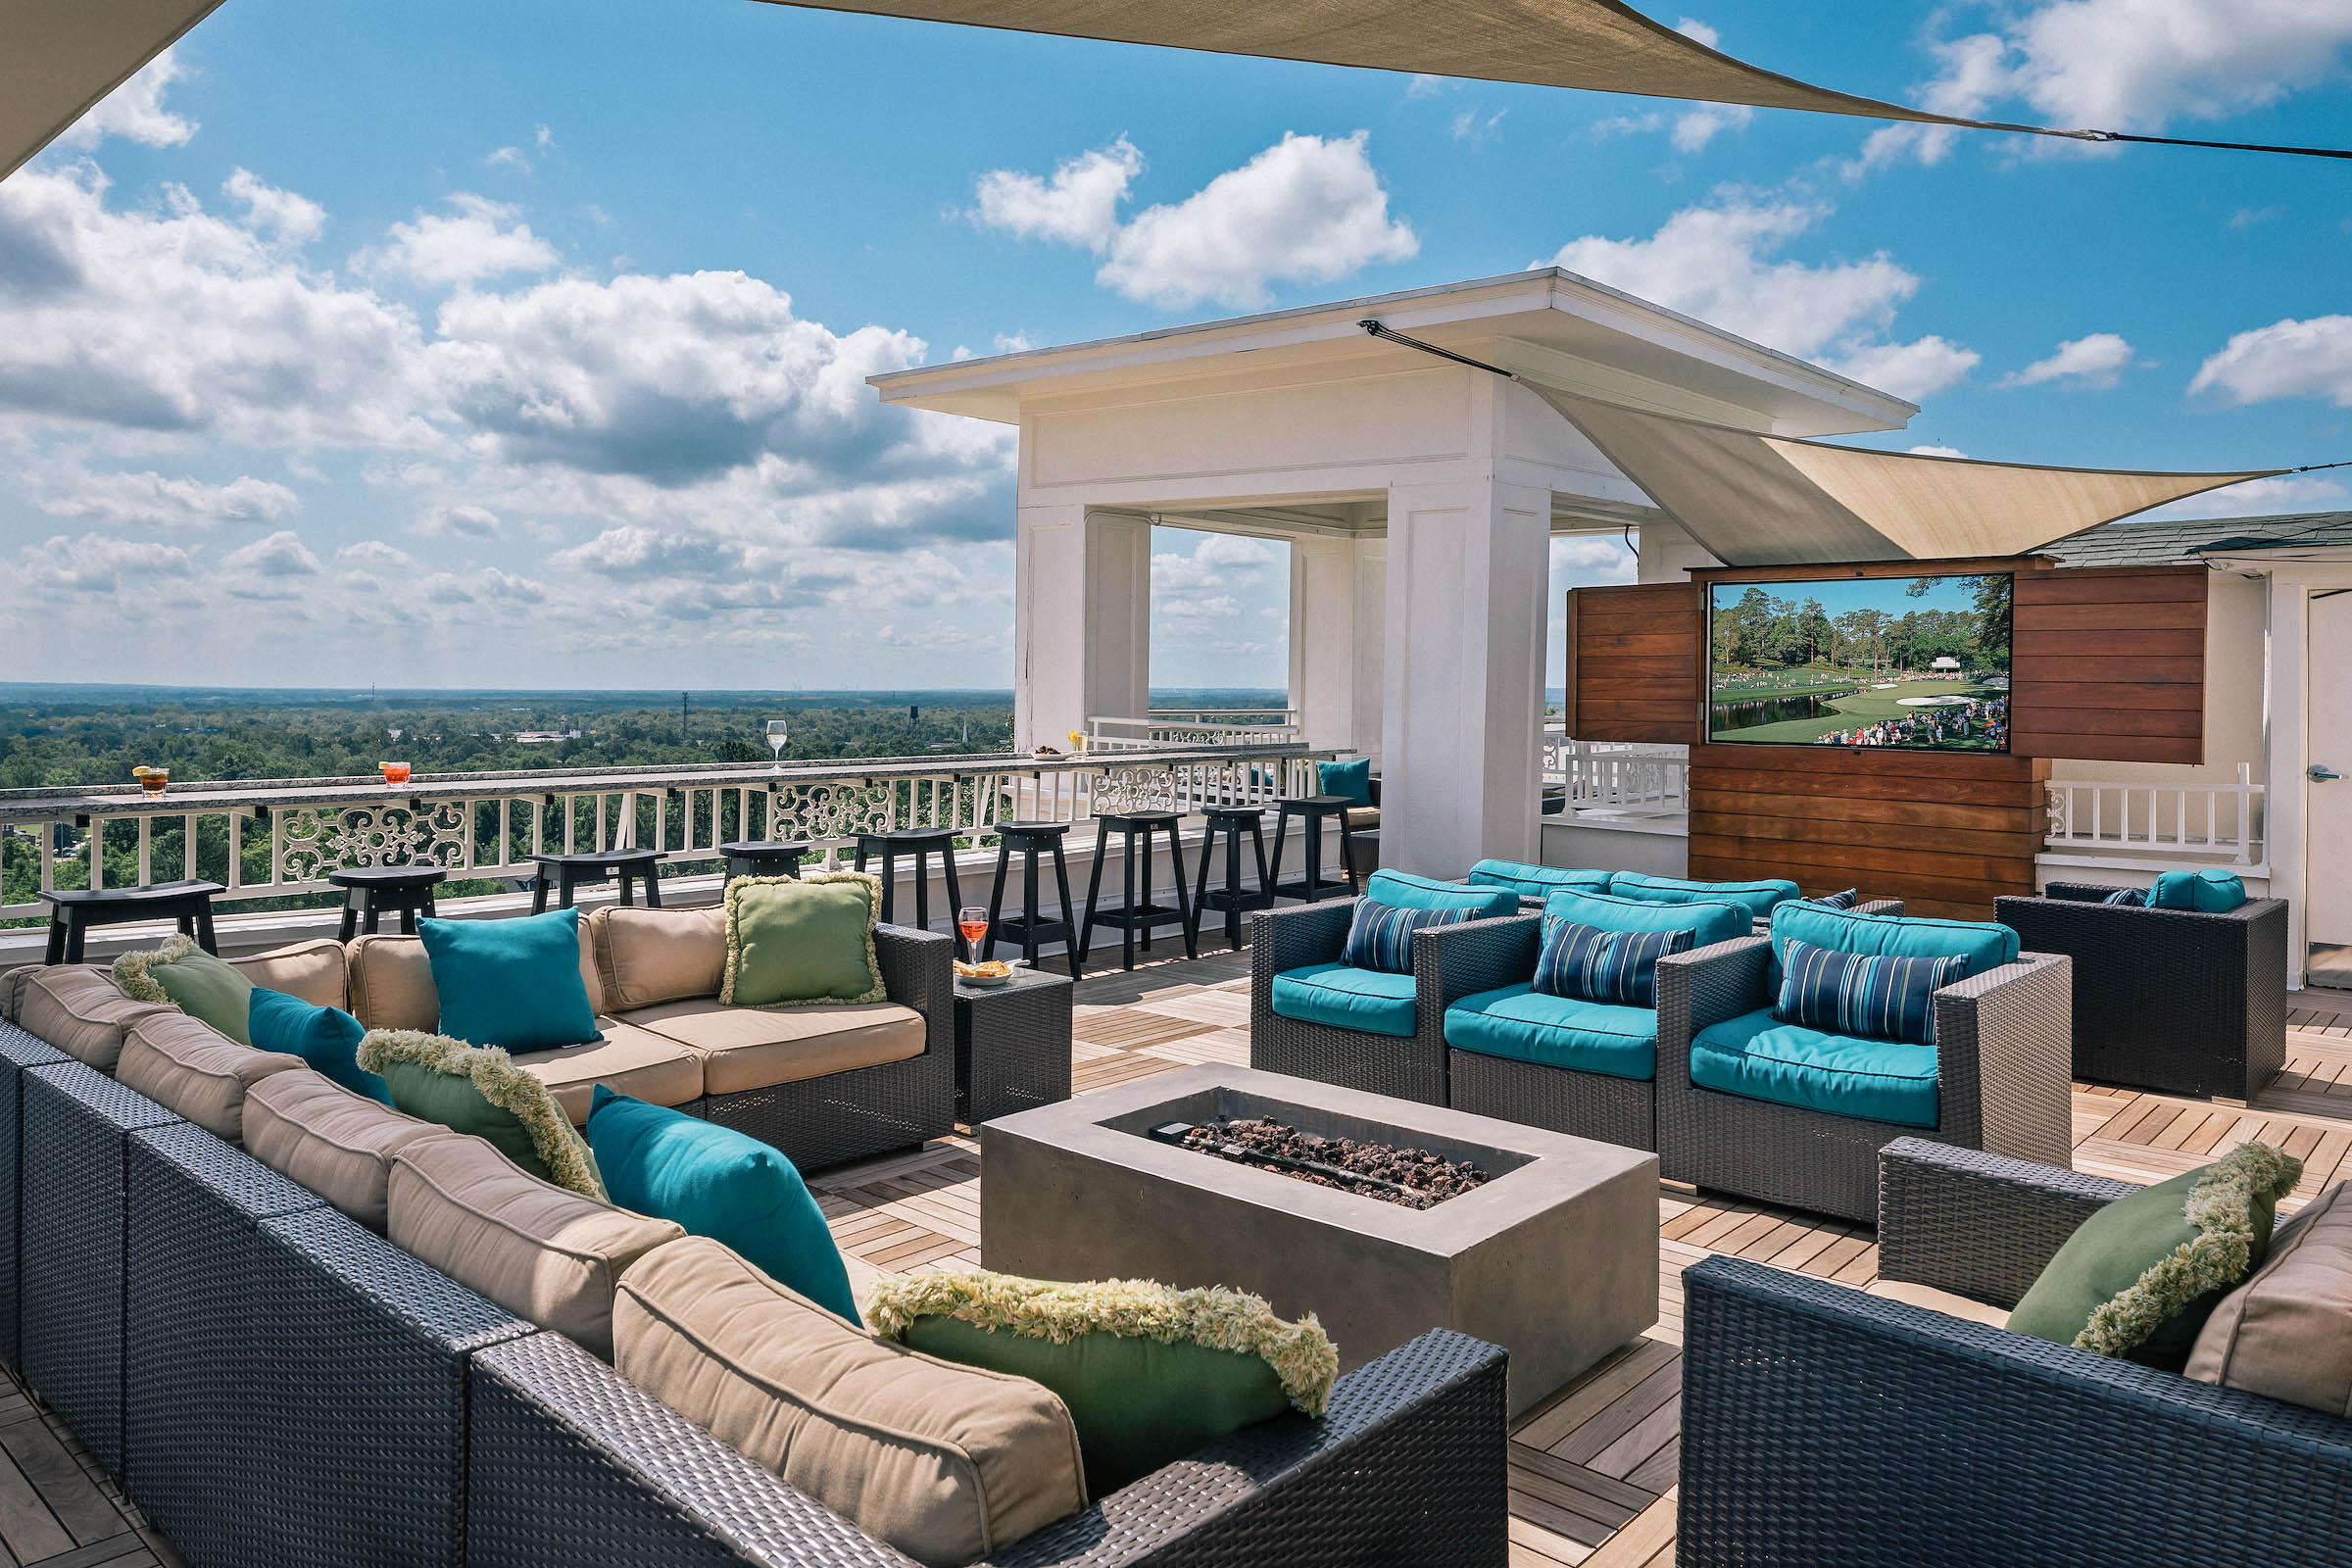 The-Partridge-Inn-Augusta-Georgia-Review-rooftop-view